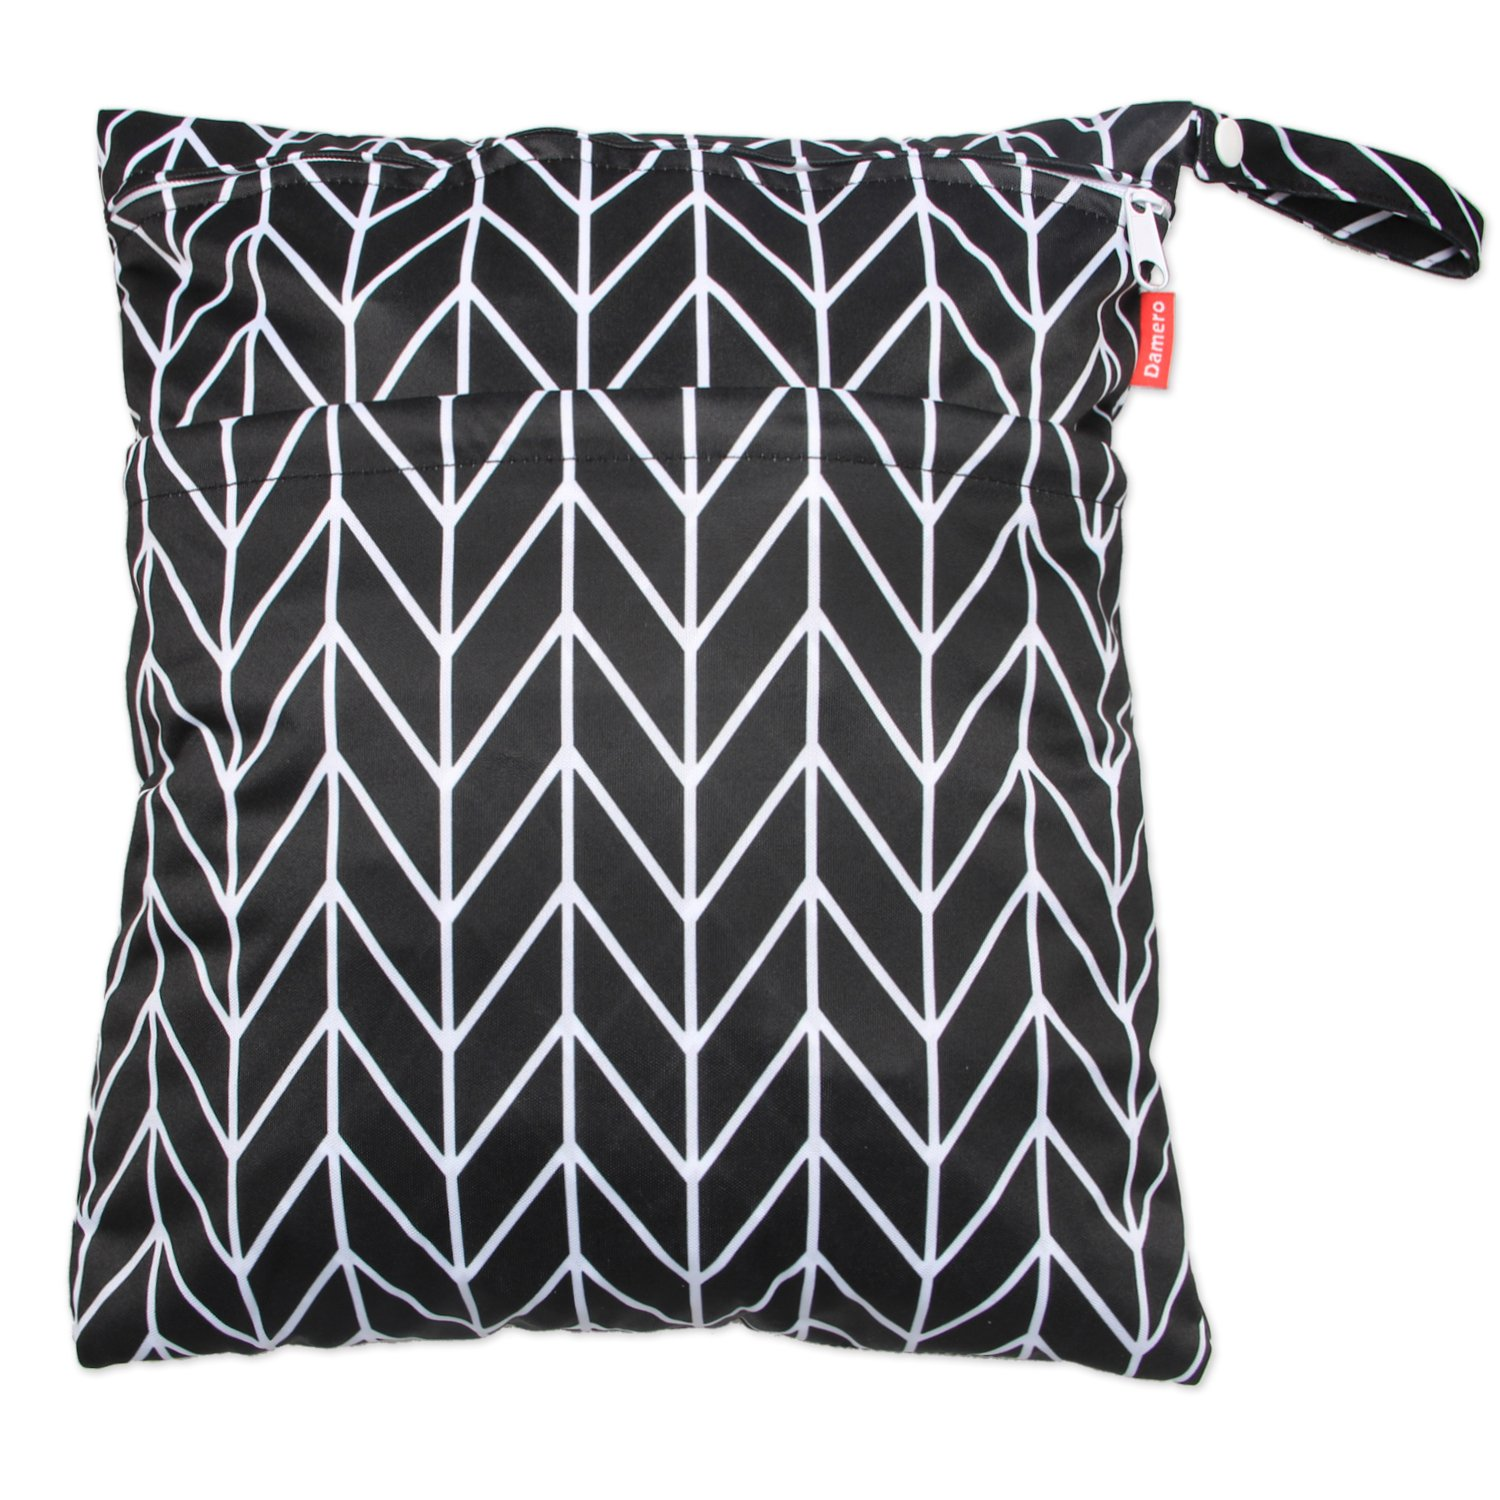 Damero Travel Wet and Dry Bag with Handle for Cloth Diaper, Pumping Parts, Clothes, Swimsuit and More, Easy to Grab and Go (Large, Black Arrows)